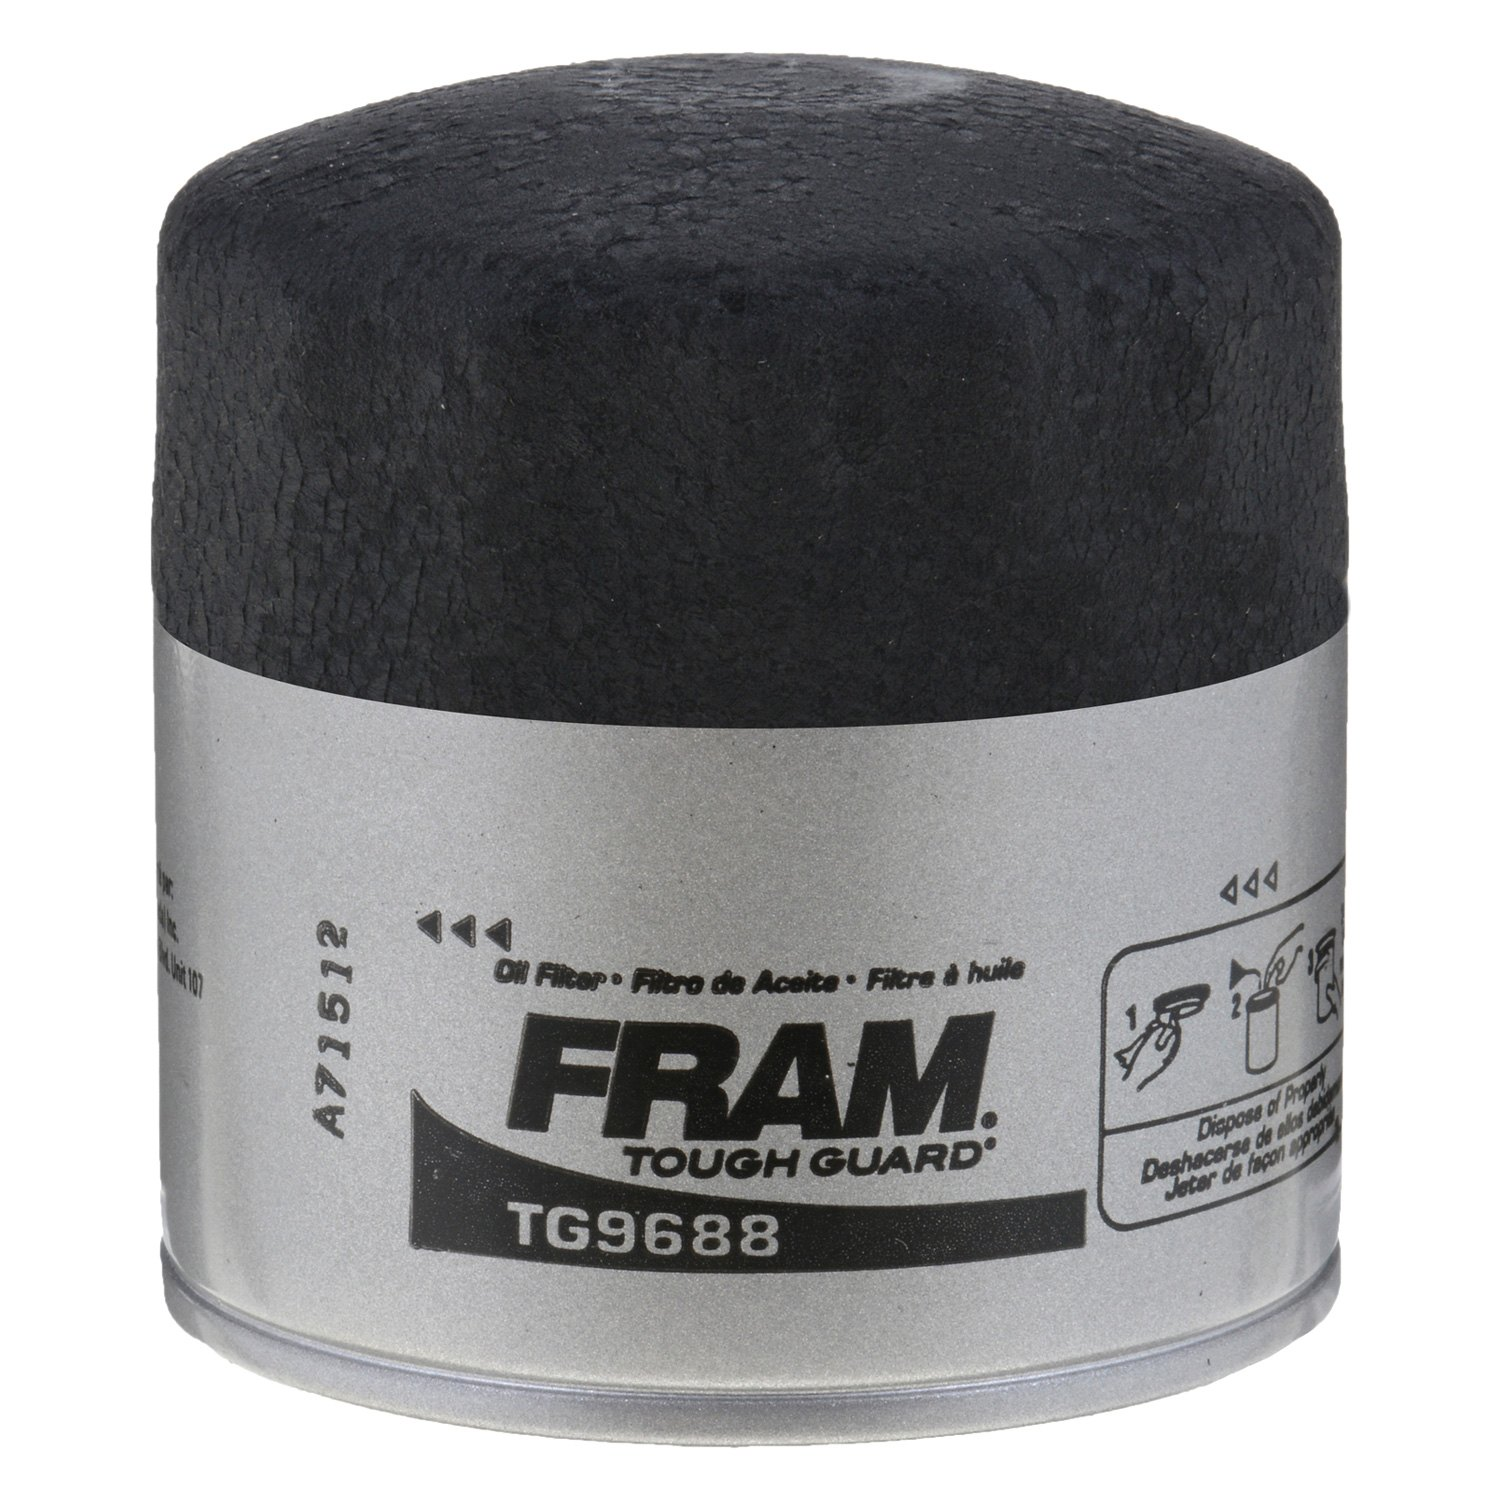 Fram Tg9688 Tough Guard Oil Filter 2000 Mitsubishi Eclipse Fuel